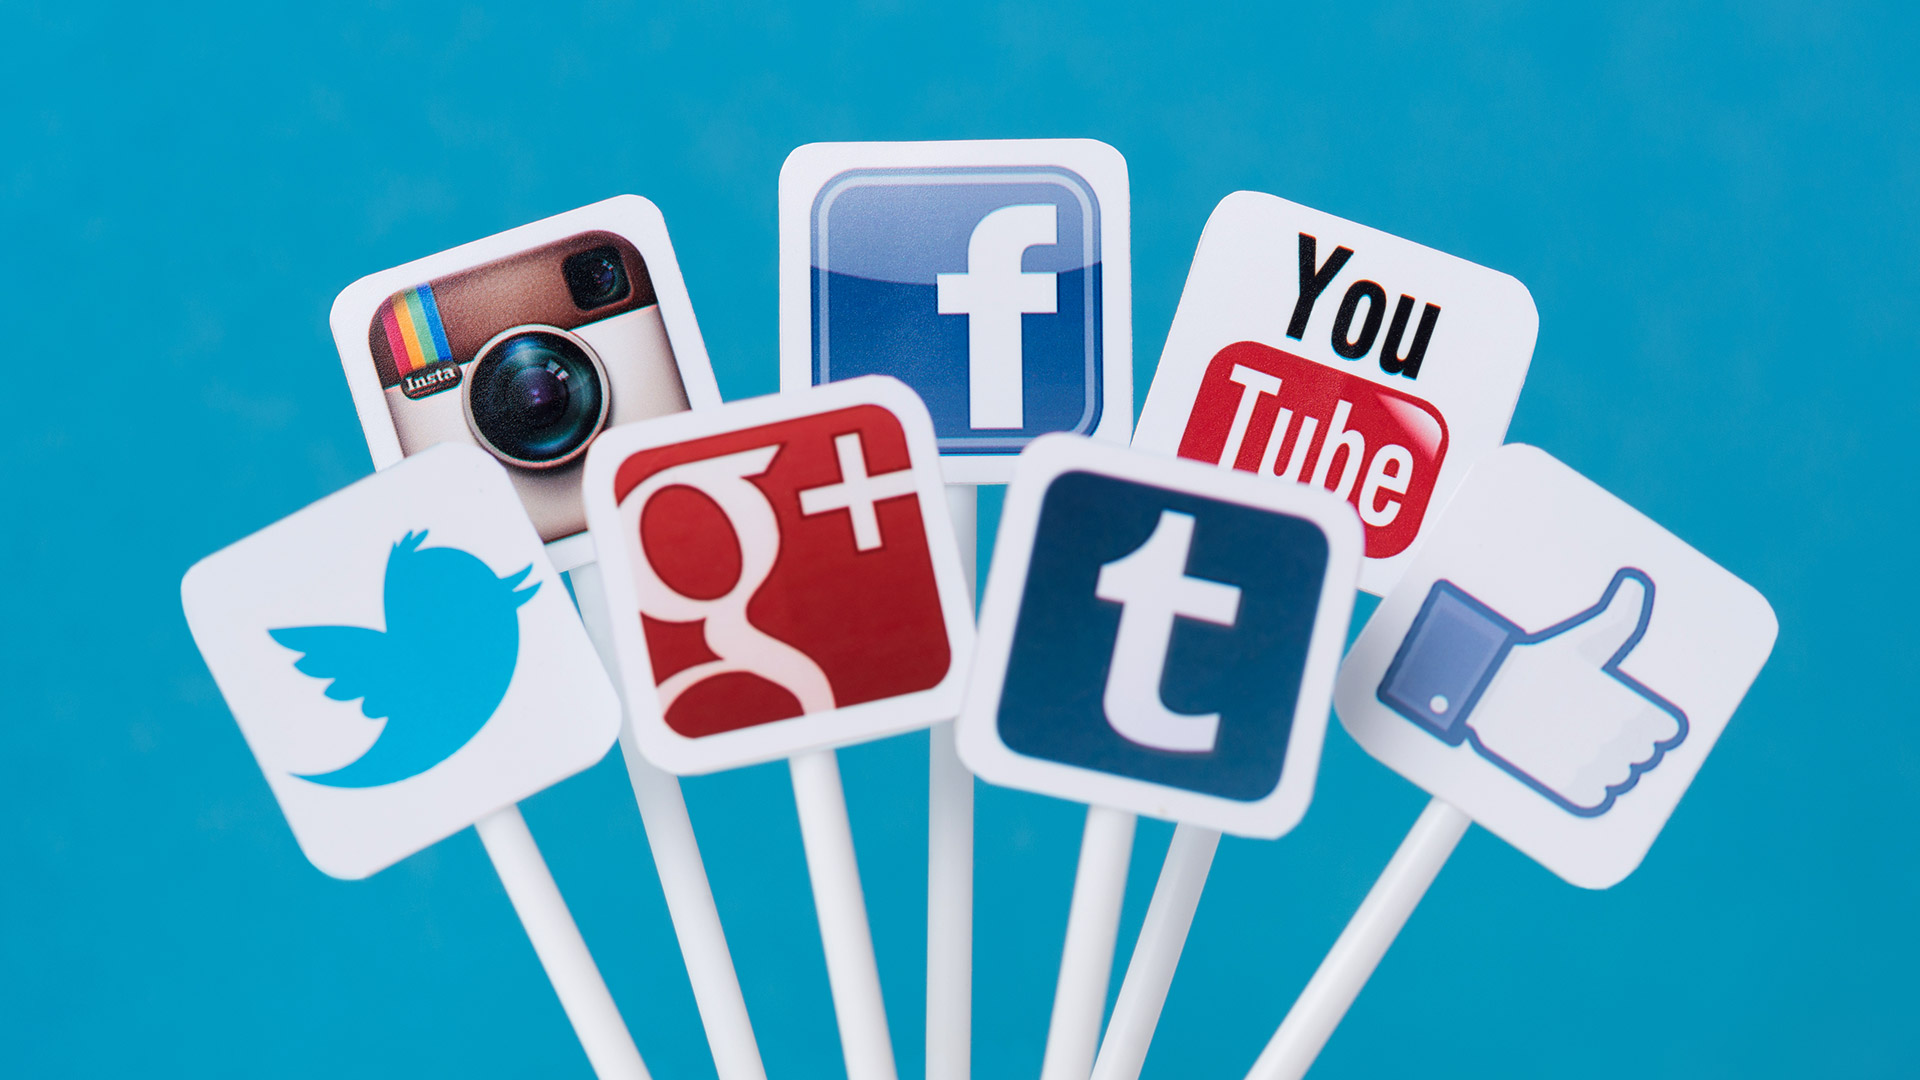 social-media-icon-signs-hd-wallpapers